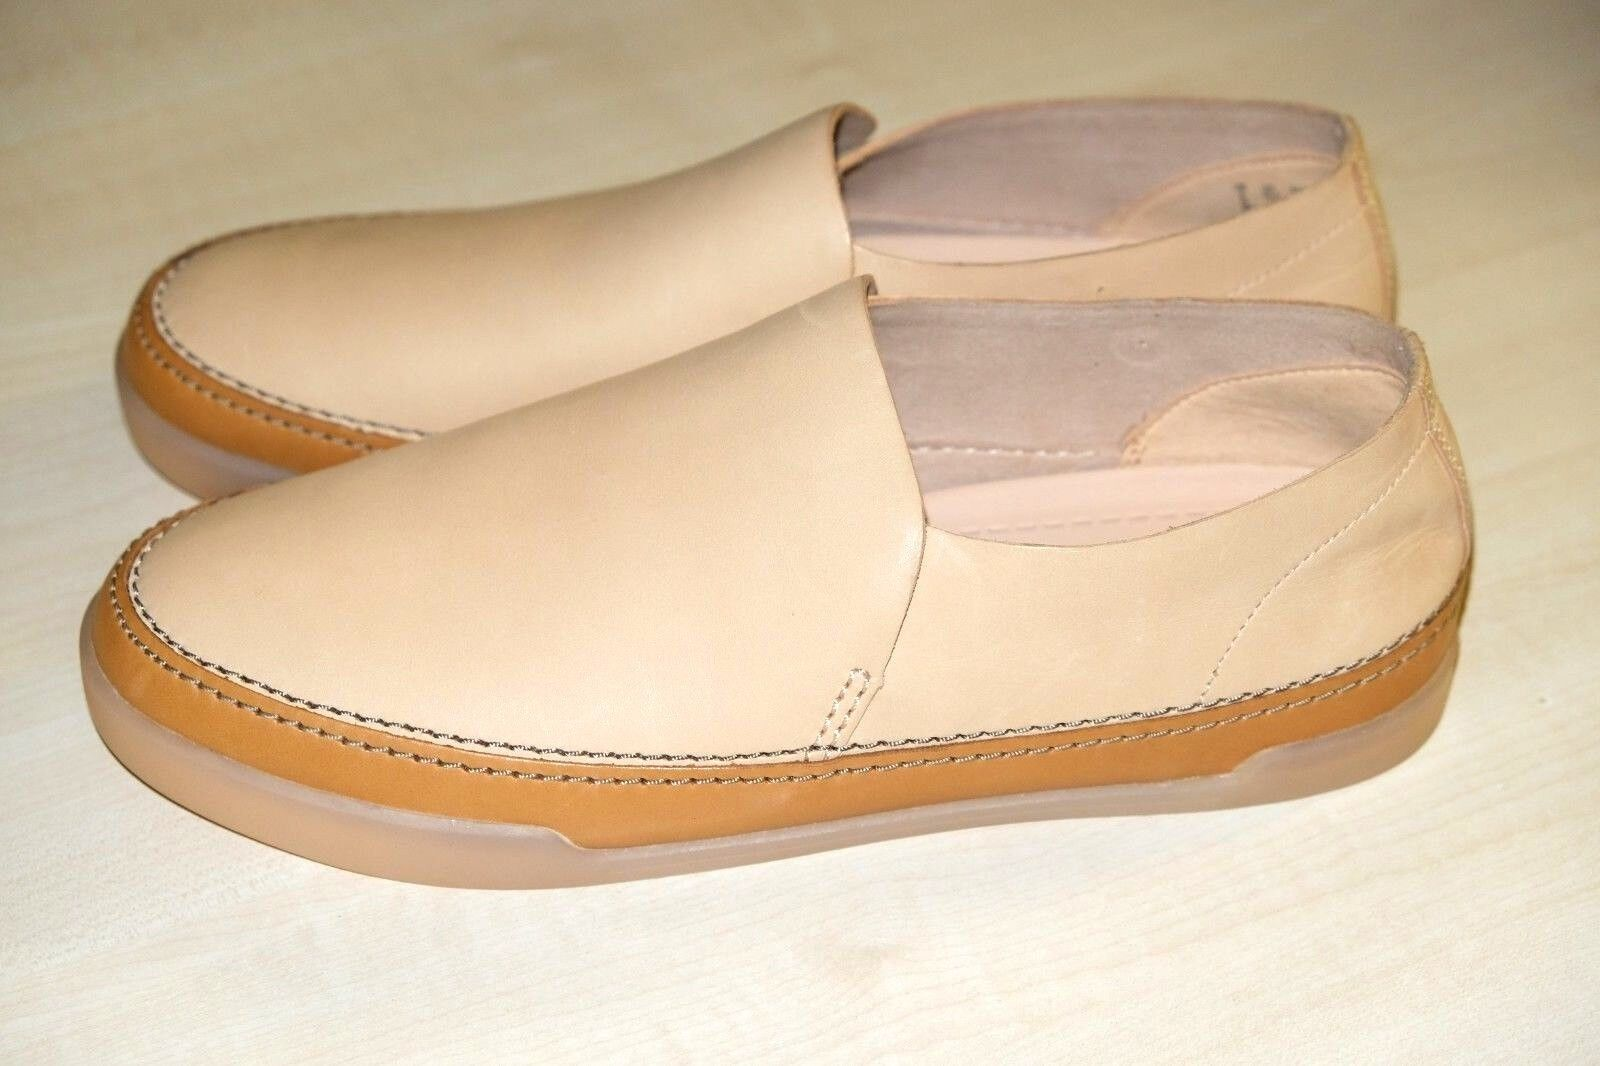 Clarks Nude Soft Leather Ladies shoes flats 8 42 D New